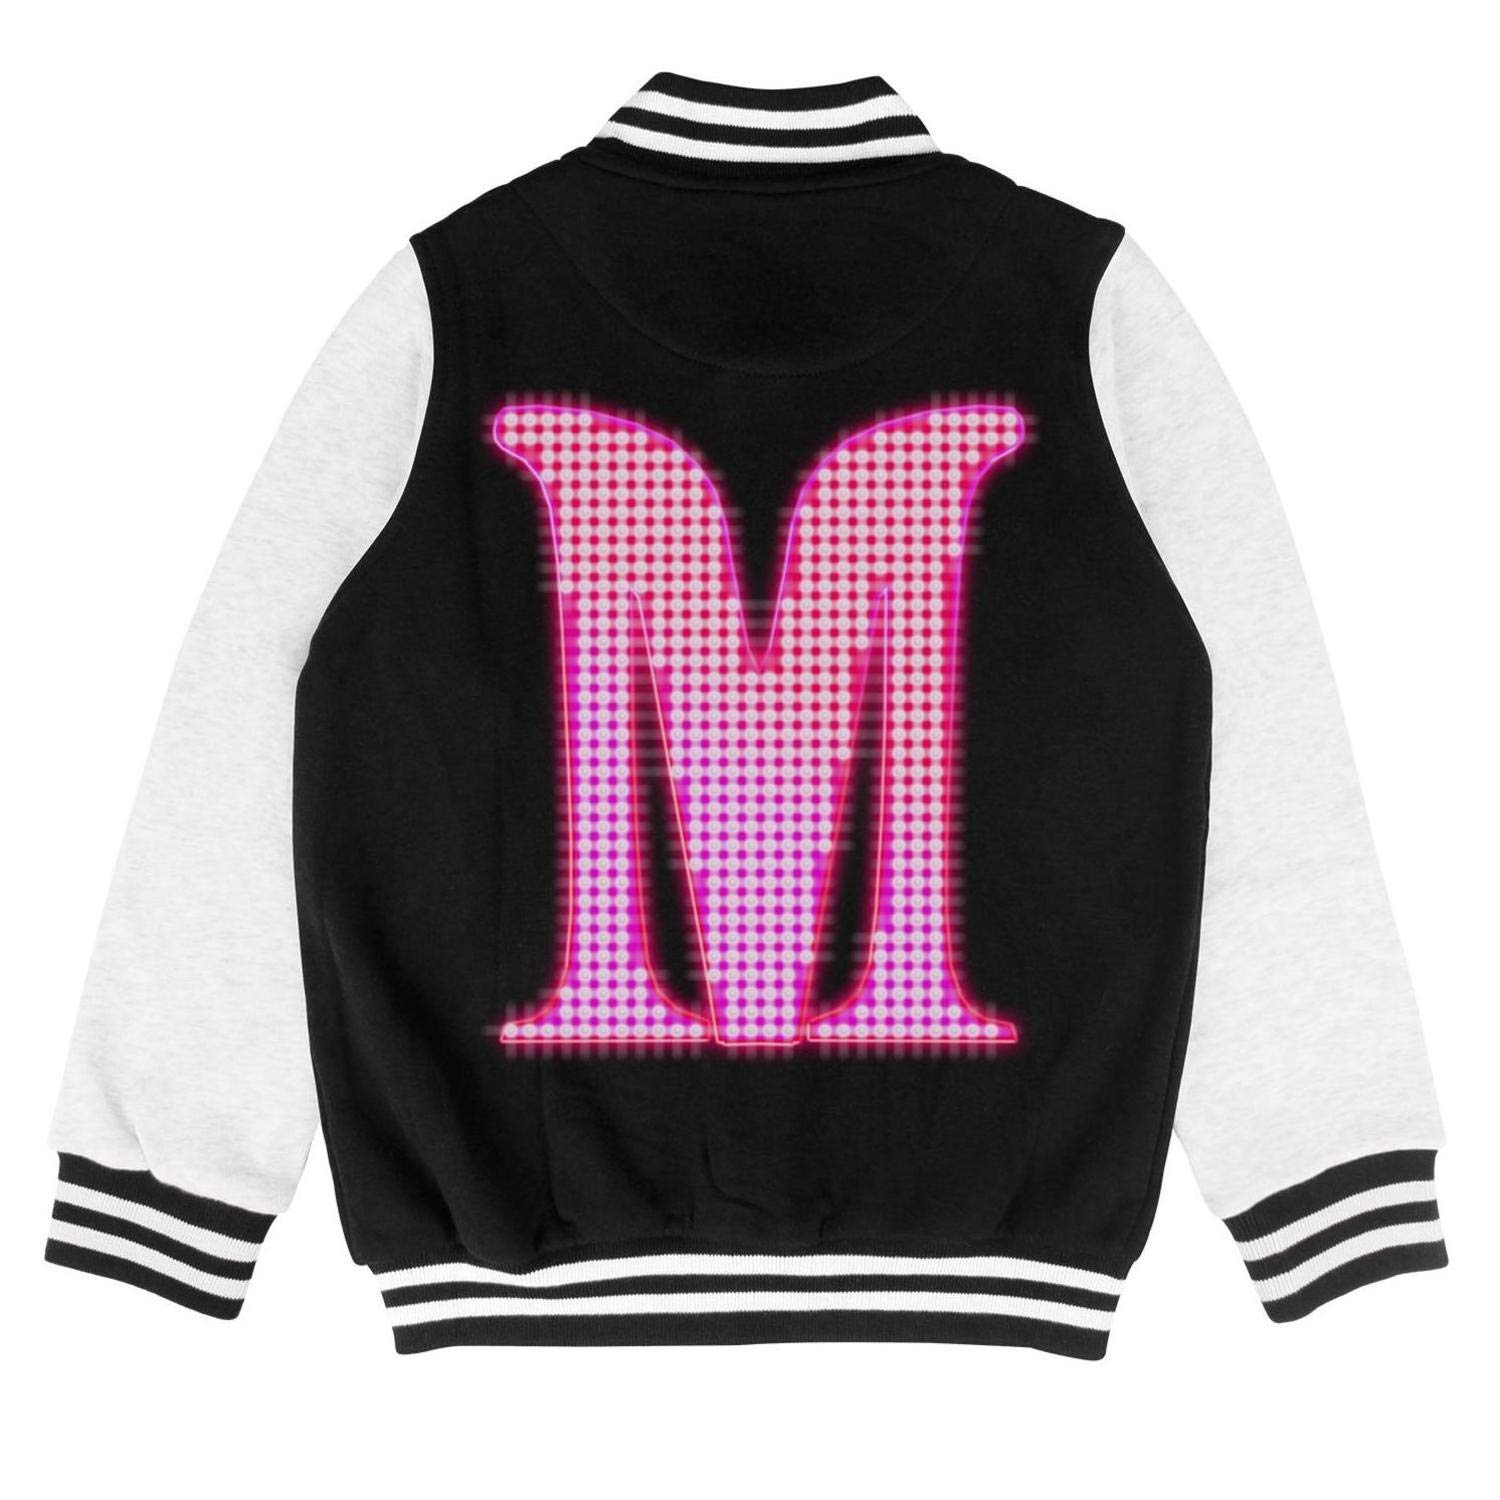 Boys Girls Varsity Letterman Baseball Jacket School Creative Rock Band Logo Design Sweatshirt Coat Cotton Top